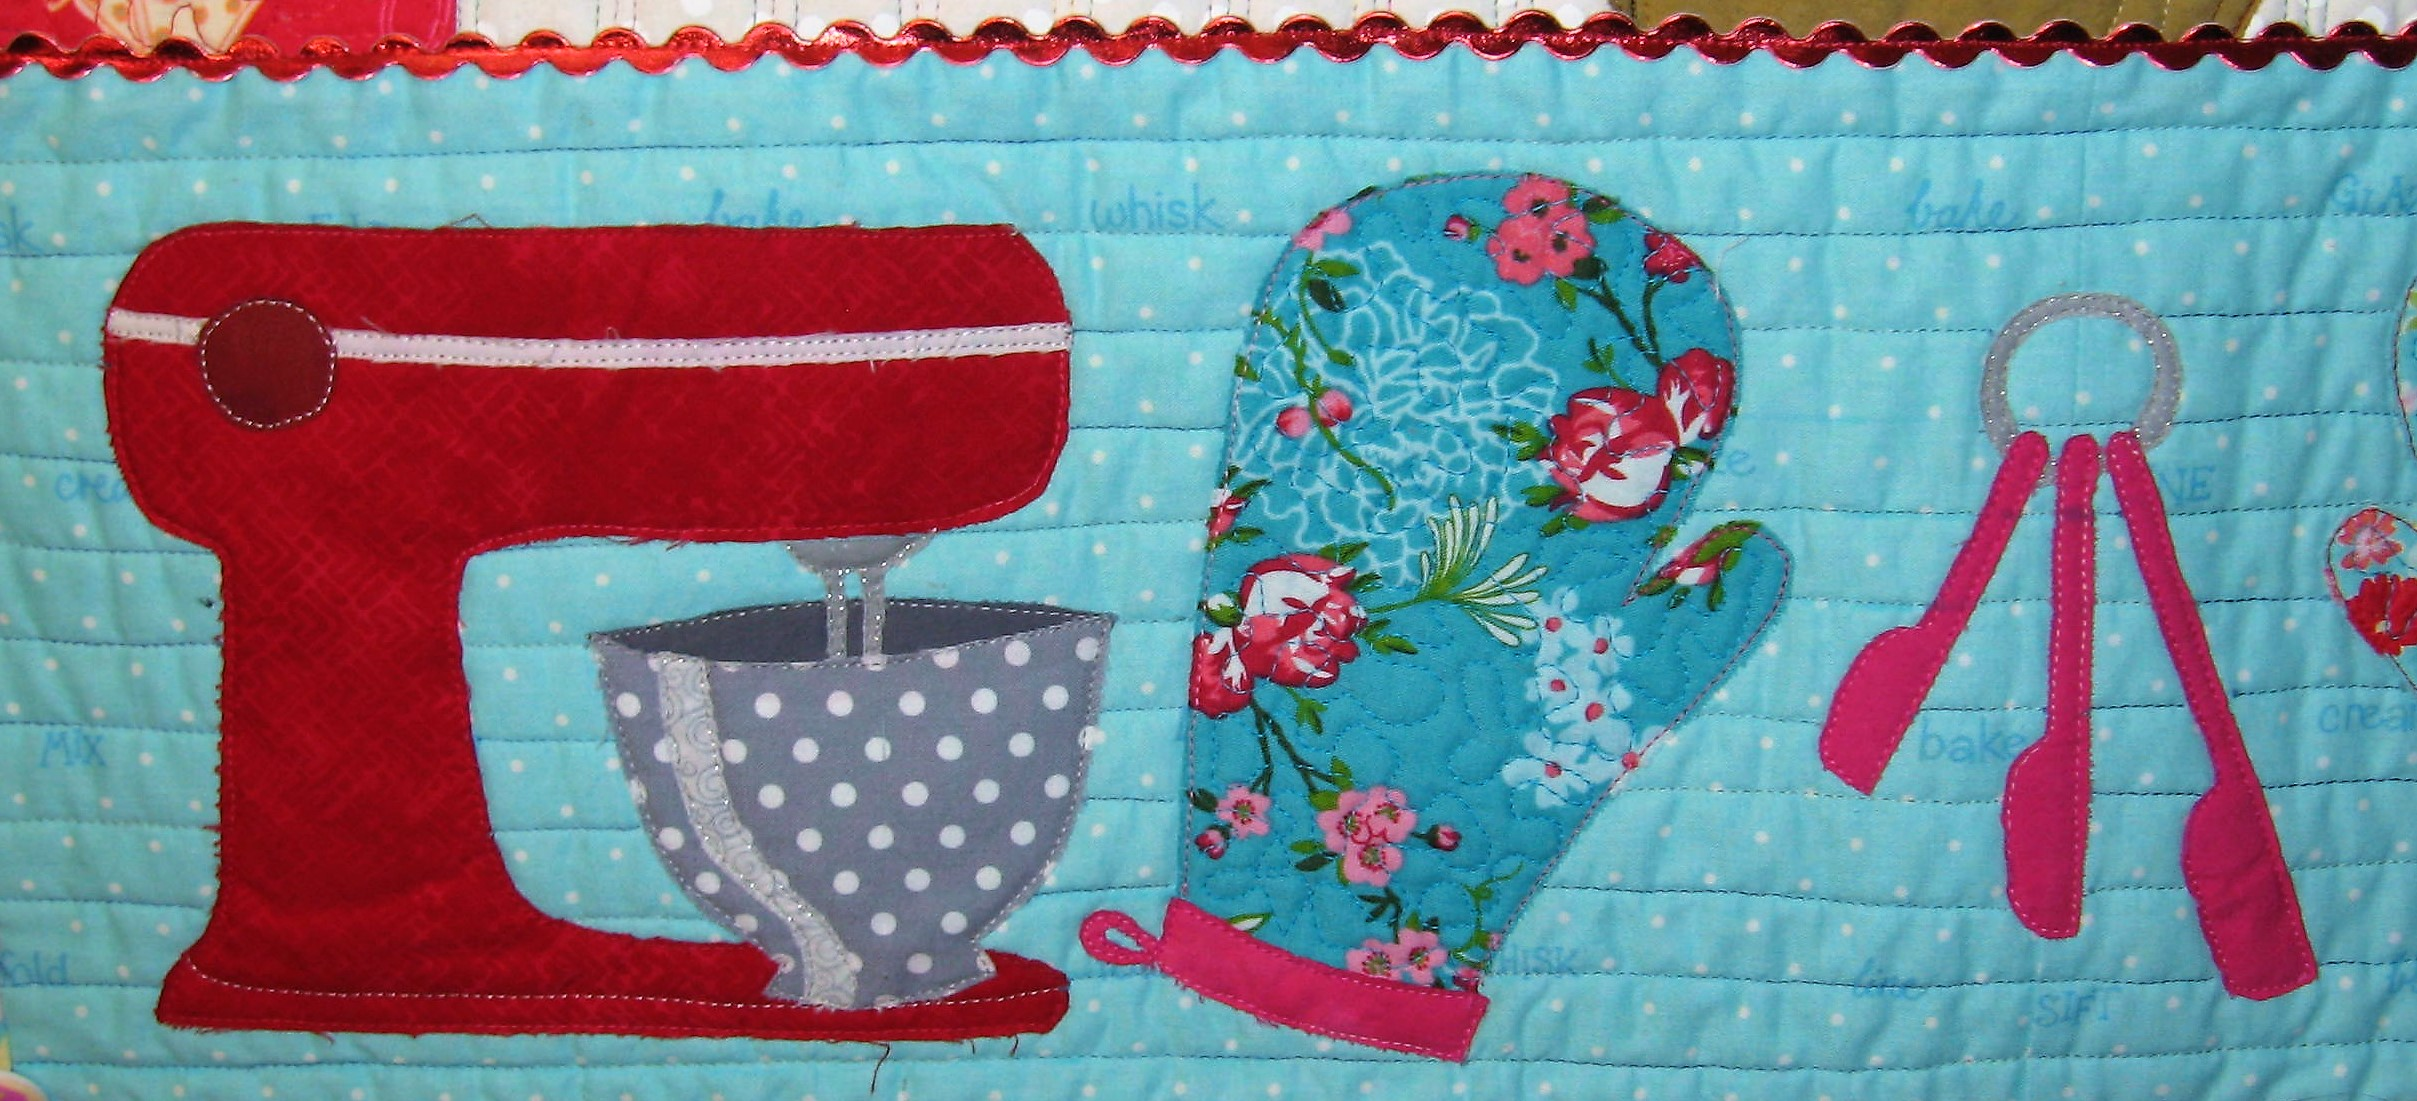 The bottom portion of the quilt has two red Mix Masters with polka dots bowls, two oven mitts and measuring spoons. I added the metallic red rick rack because I thought it needed something and rick rack has a retro vibe often used as trim on old aprons.  June 30, 2018 is the deadline for the contest and I have had this quilt finished for a month waiting for the deadline so I could share it. I believe I need to wait a few weeks to find out if Cupcake Betty is included in the challenge. All accepted quilts will travel for 2 years to various quilt venue across the United States.